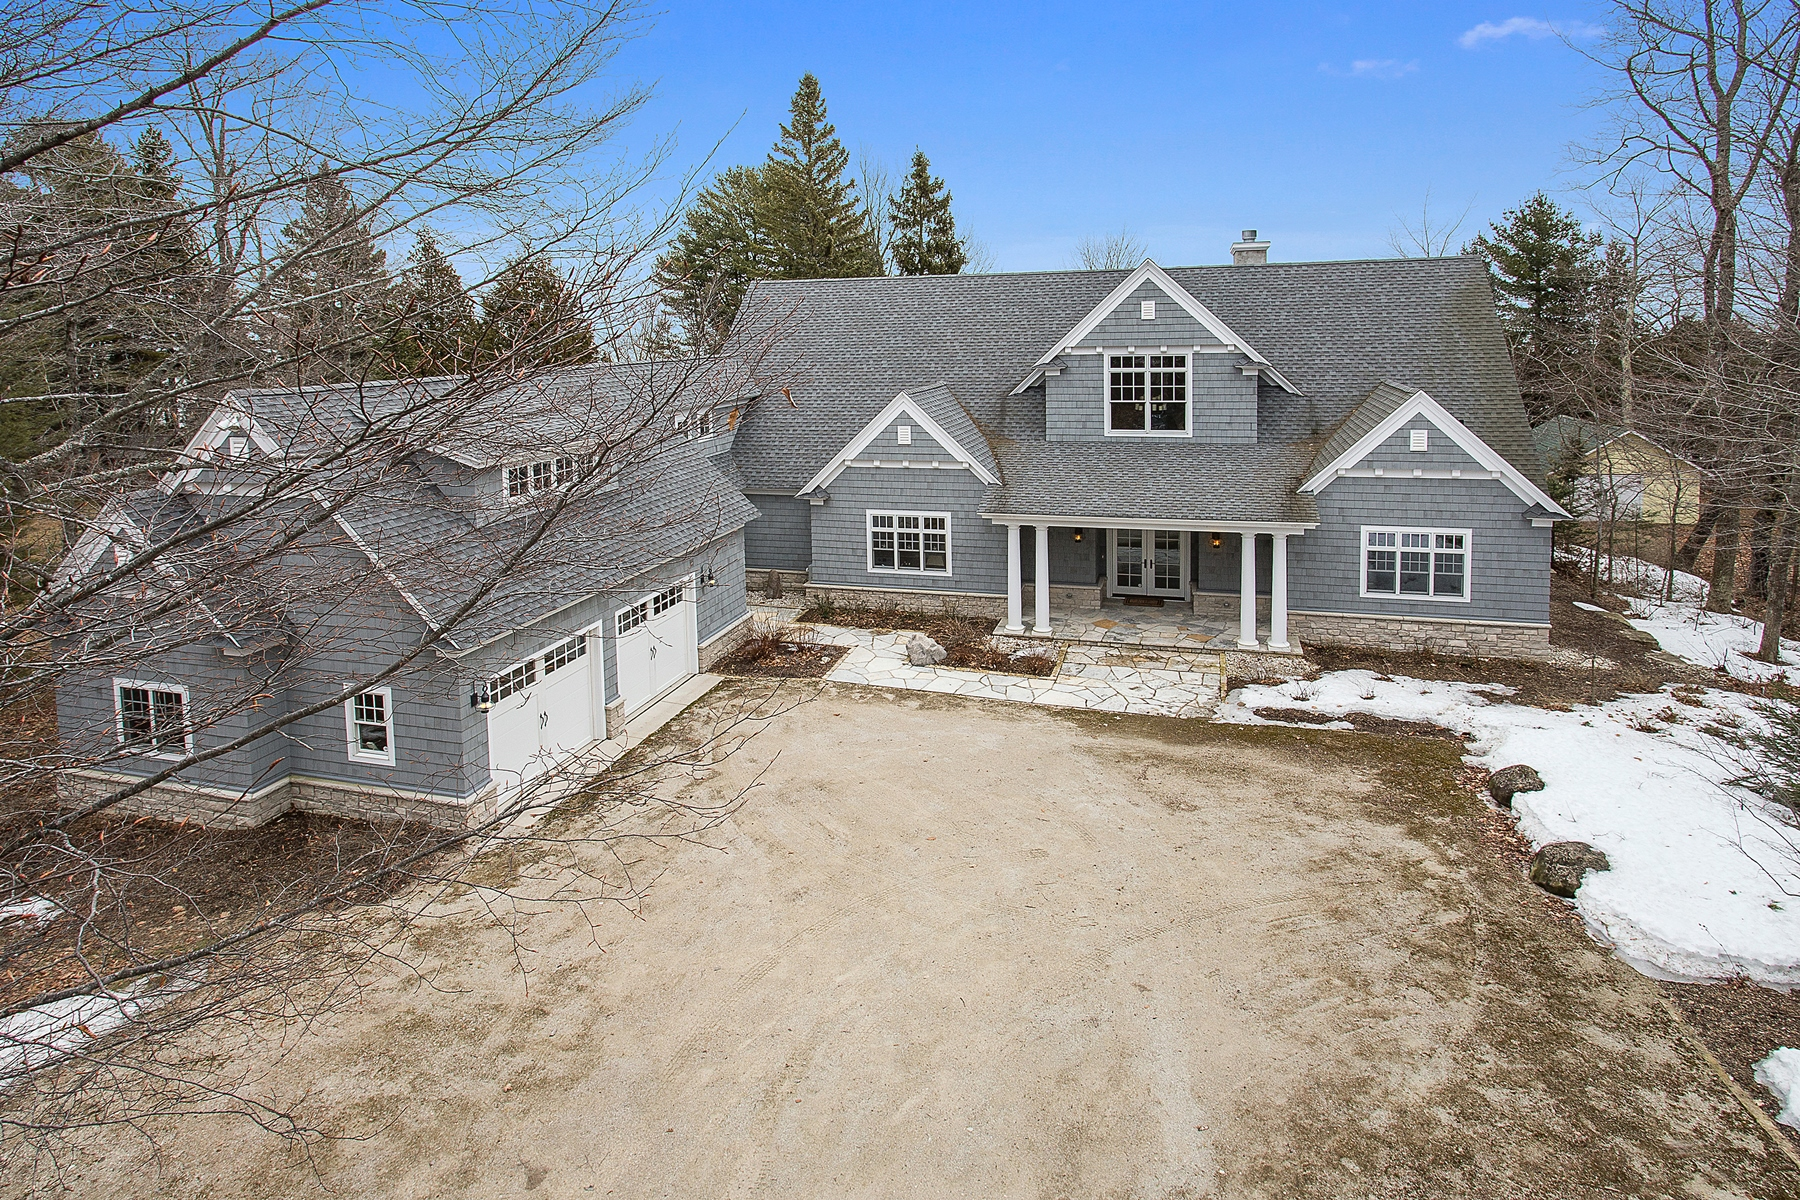 Single Family Home for Sale at Cape Cod Shore Home 3230 Lake Forest Park Road Sturgeon Bay, Wisconsin 54235 United States